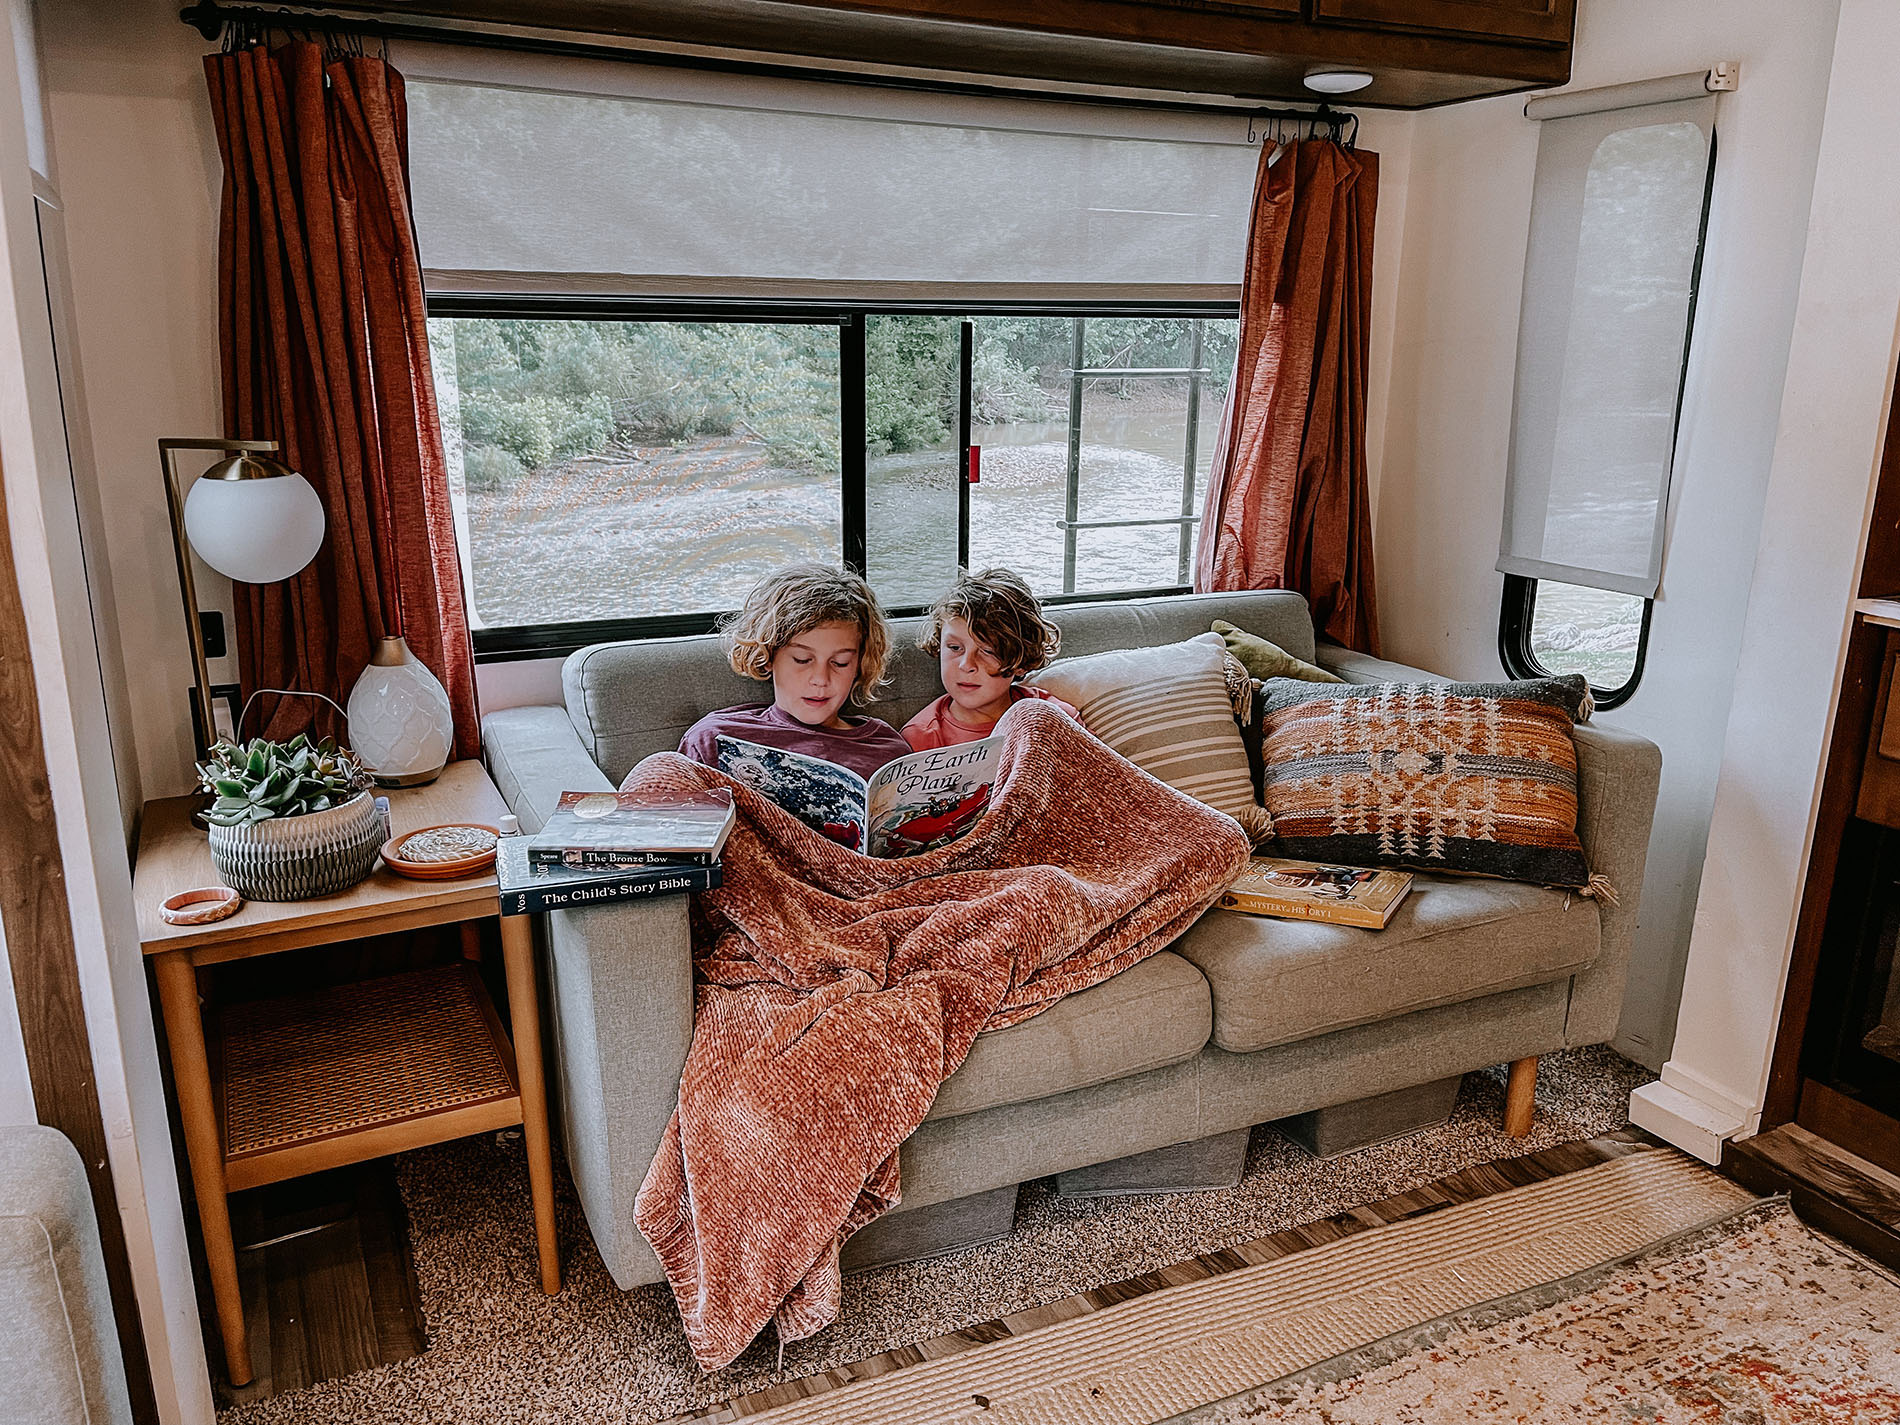 RV end table lamp